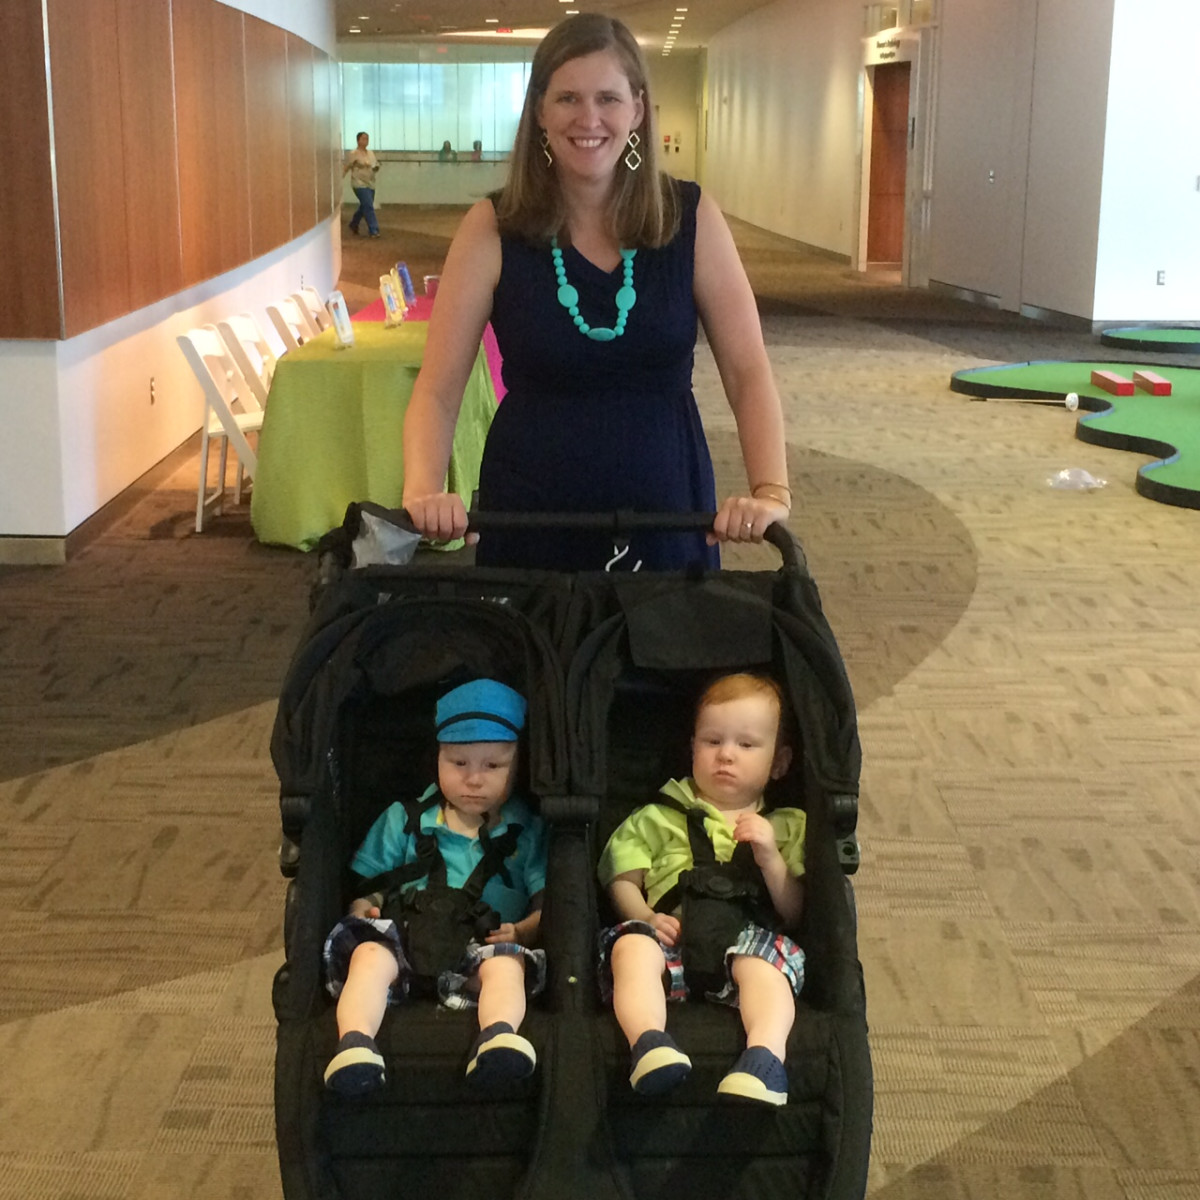 Samantha Brantley with twins at the Bad Pants fashion show